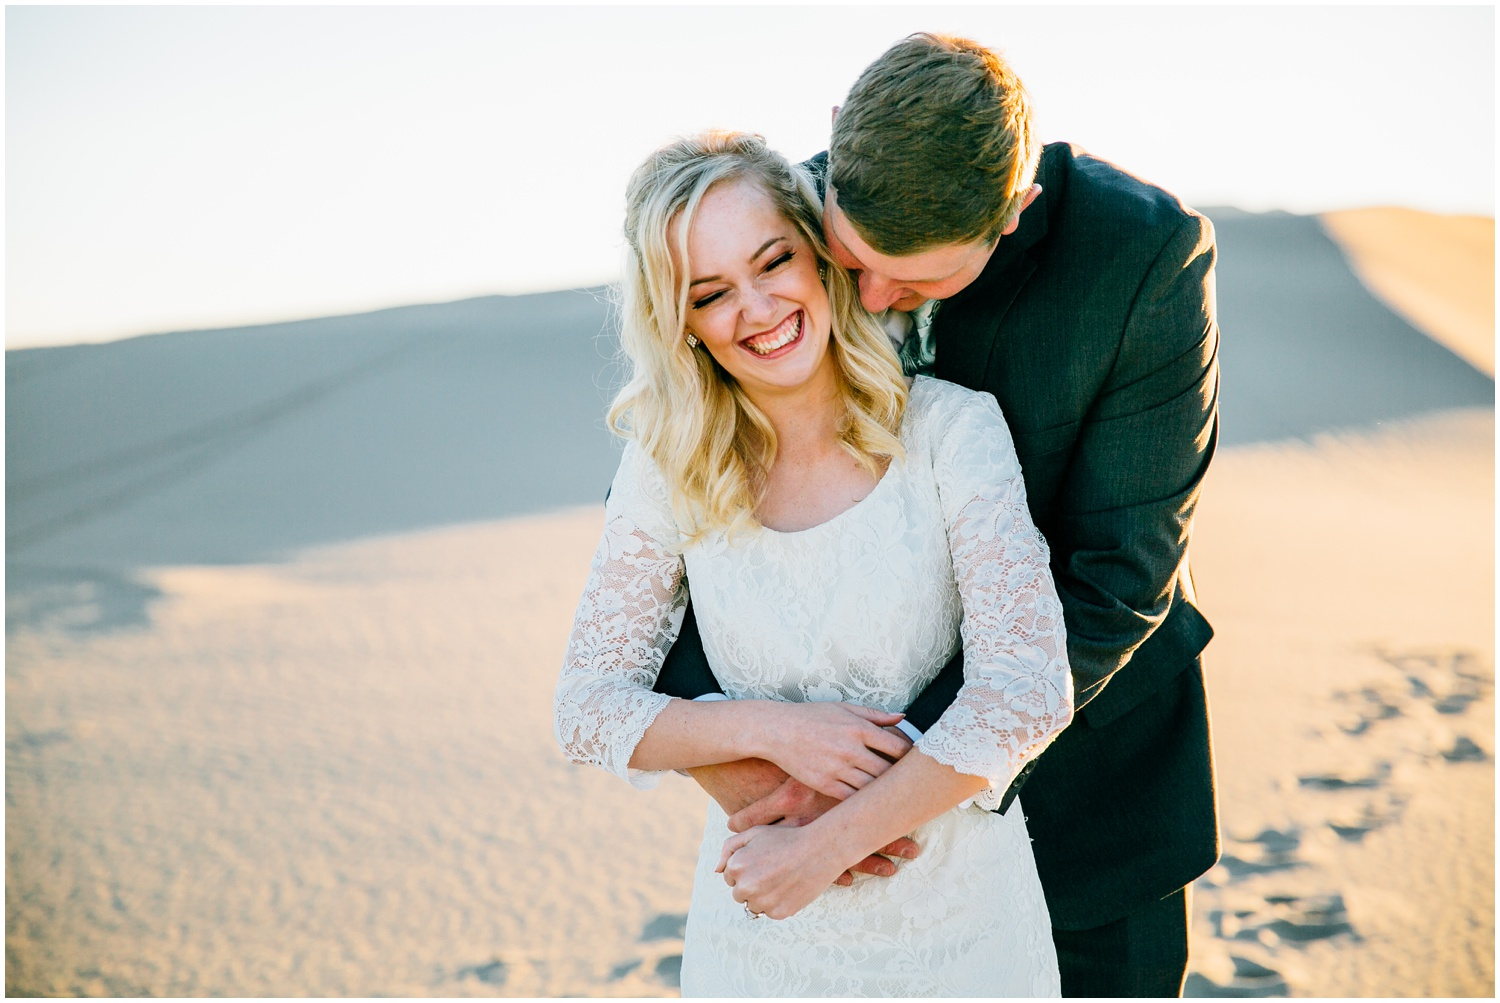 saint-anthony-sand-dunes-bridals-idaho-engagements-colorado-wyoming-wedding-photographer_0739.jpg